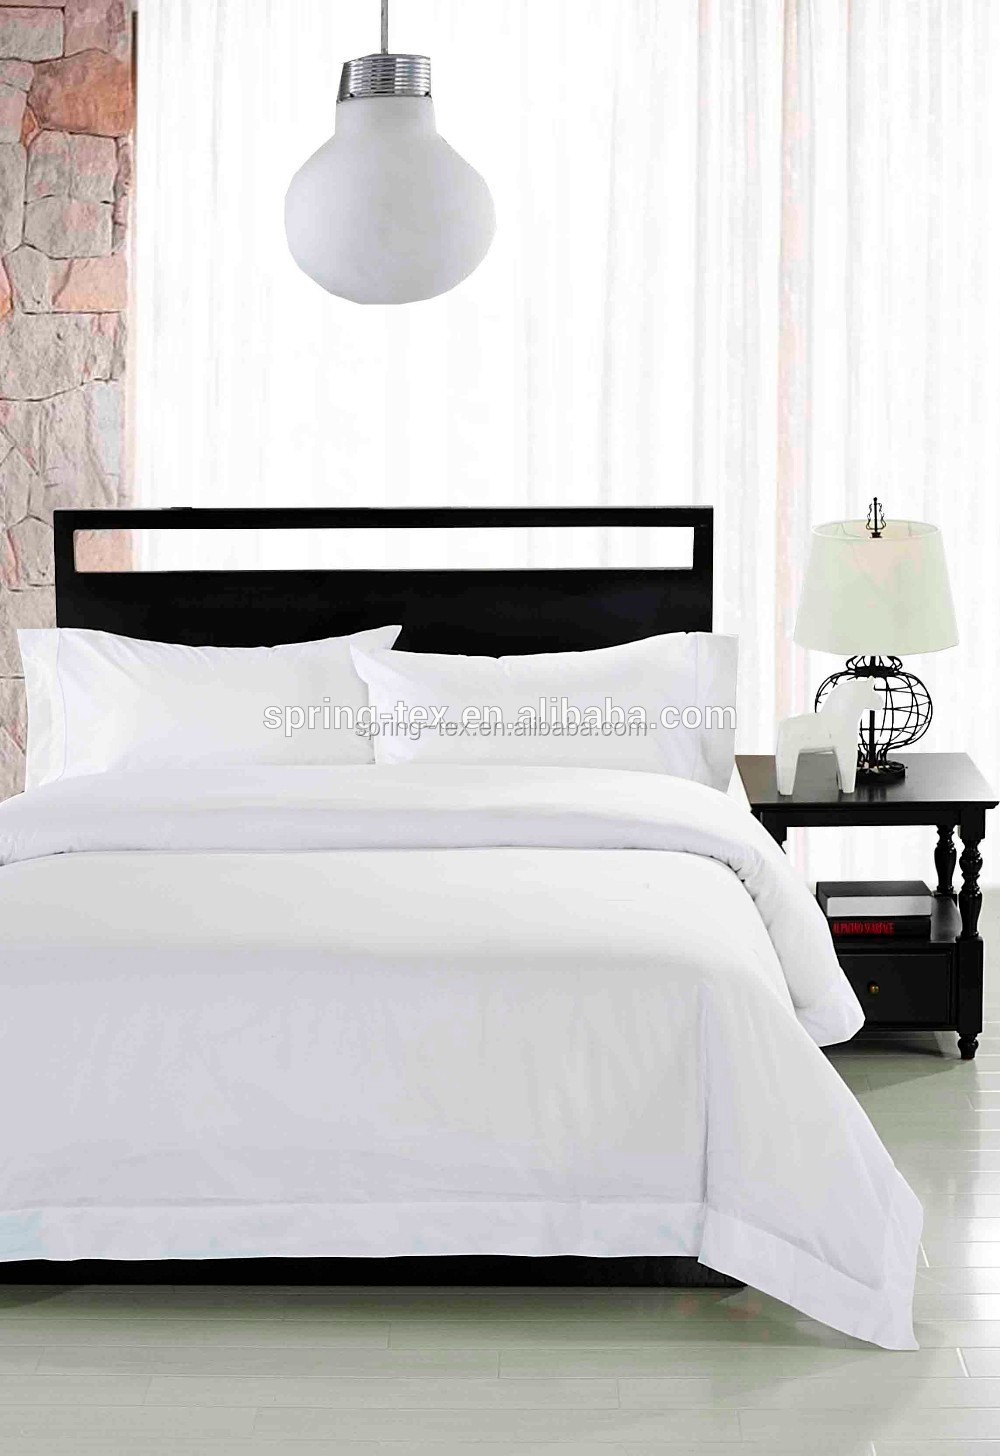 Oeko Tex Certified Factory 100 Cotton 600tc White Hotel